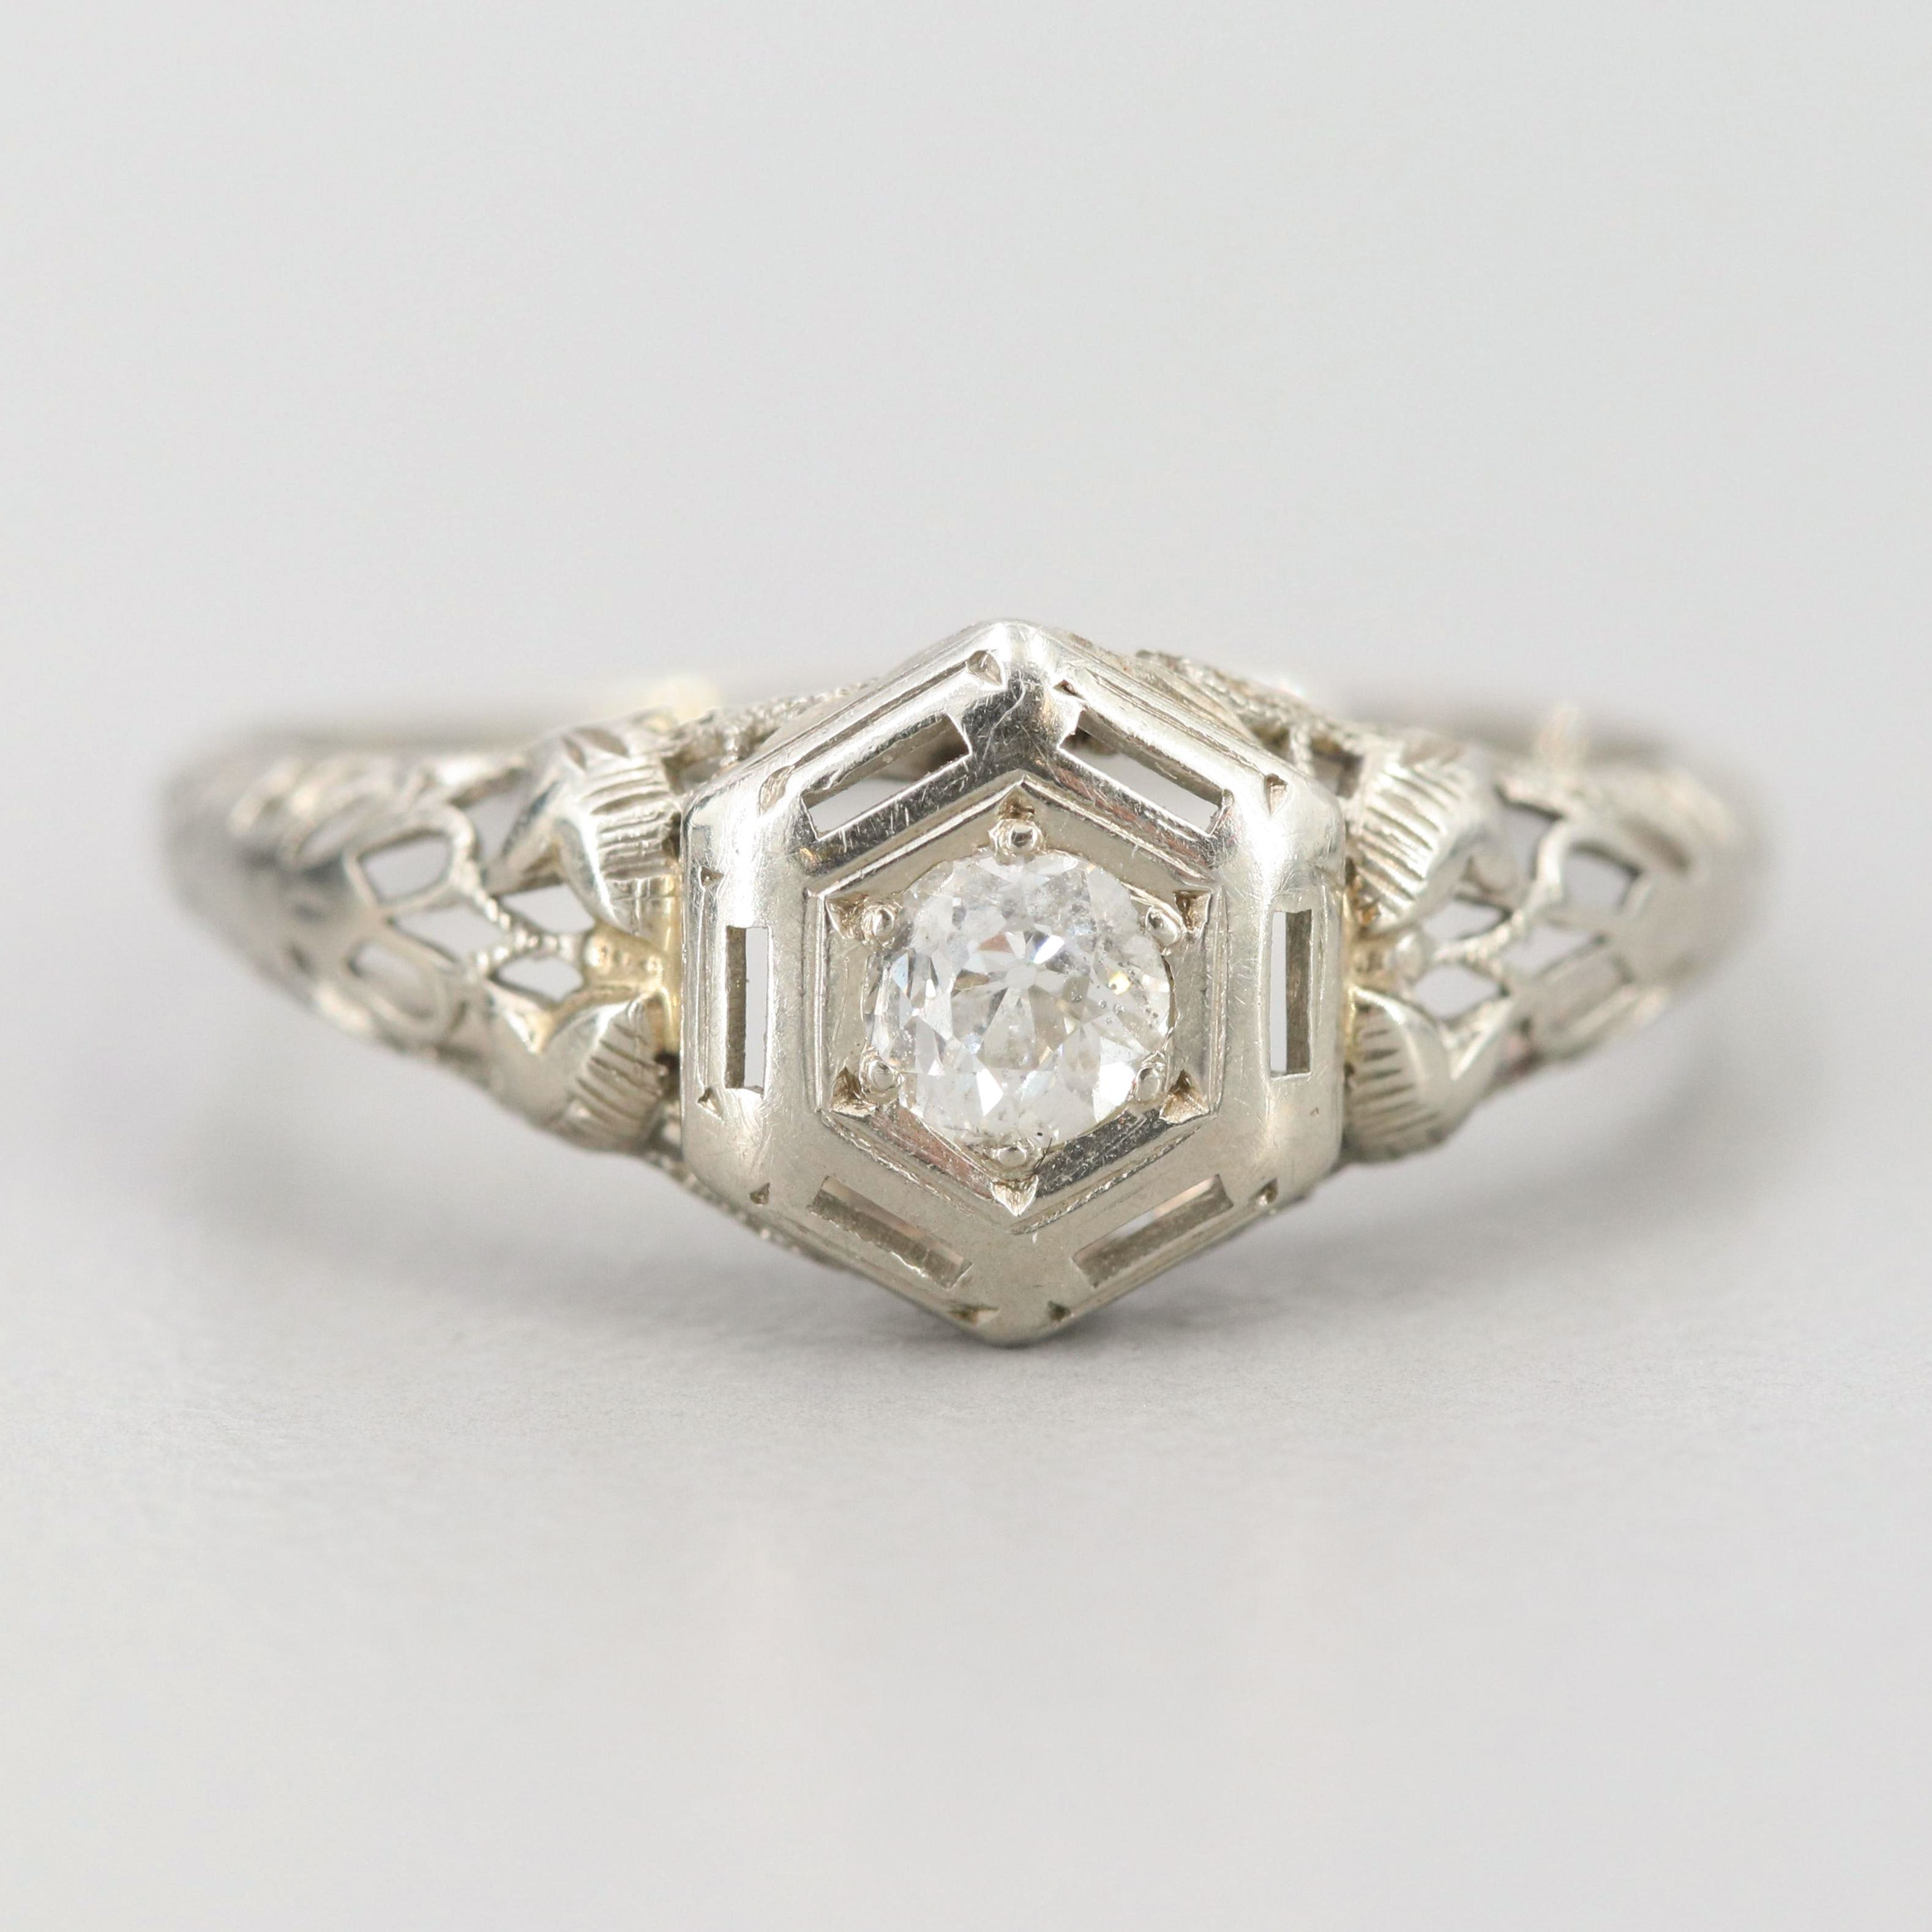 Vintage 18K White Gold Diamond Ring with Filagree Detail